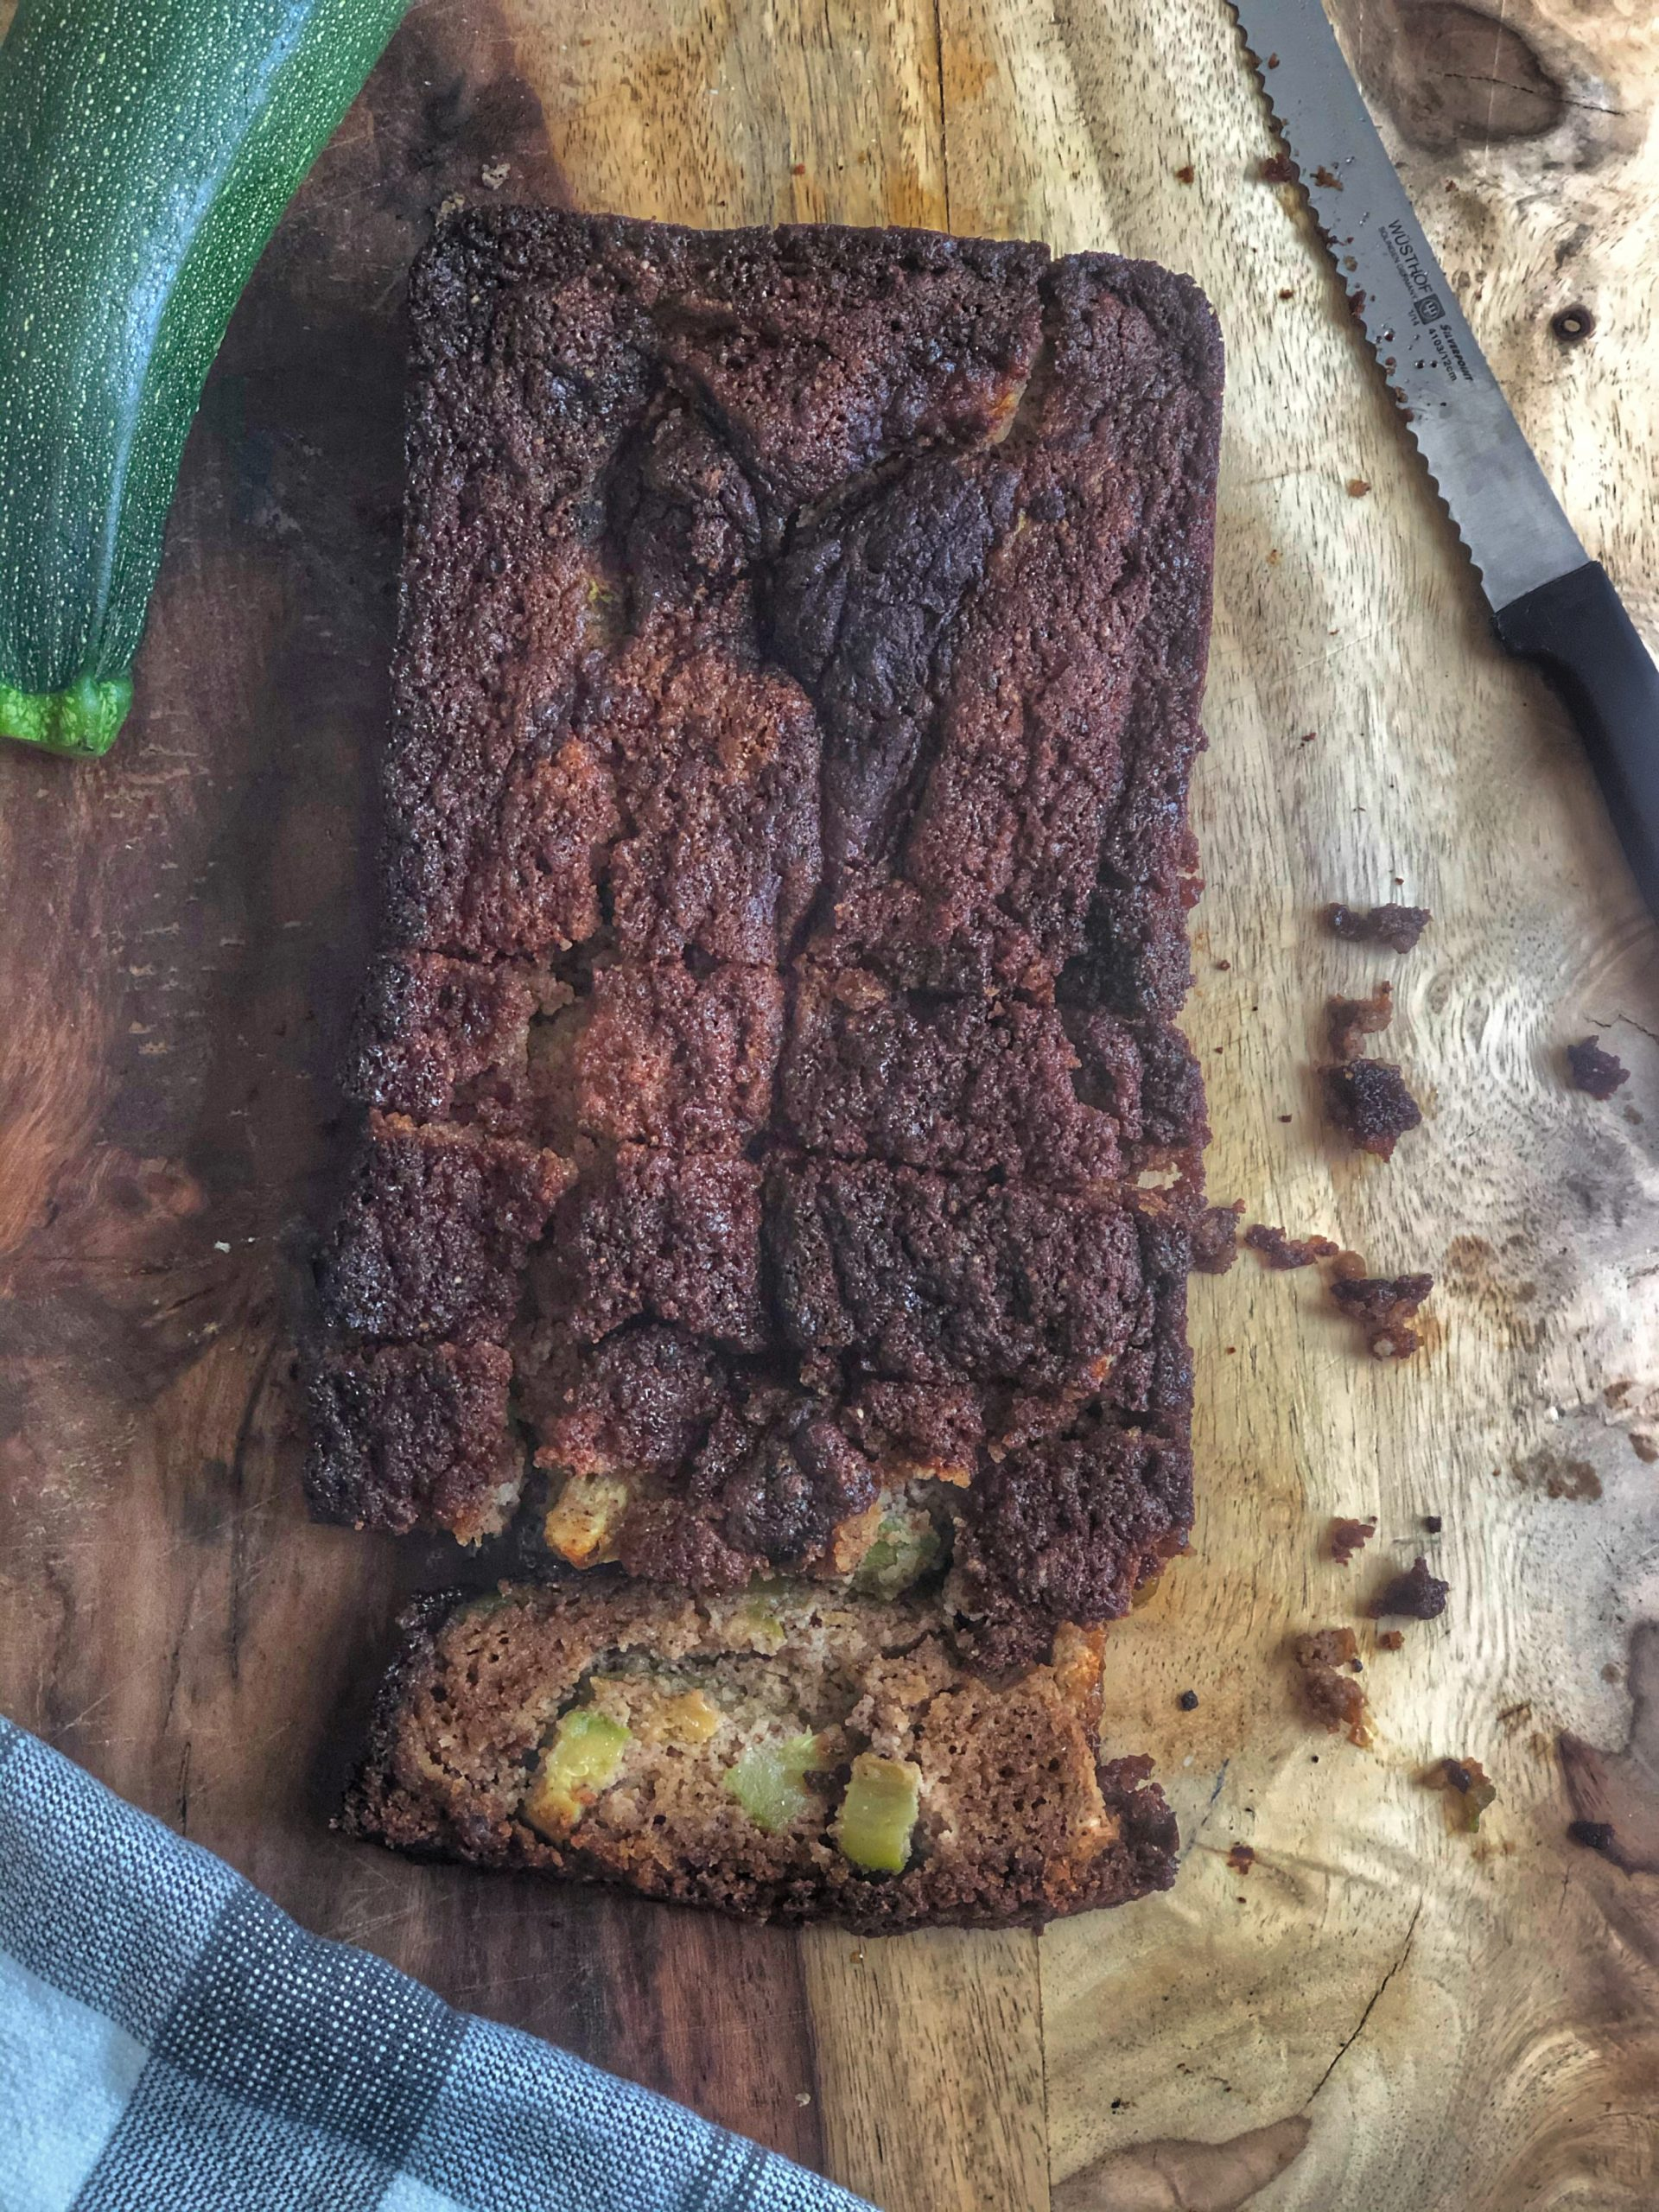 zucchini bread on a wooden board with a knife and a napkin